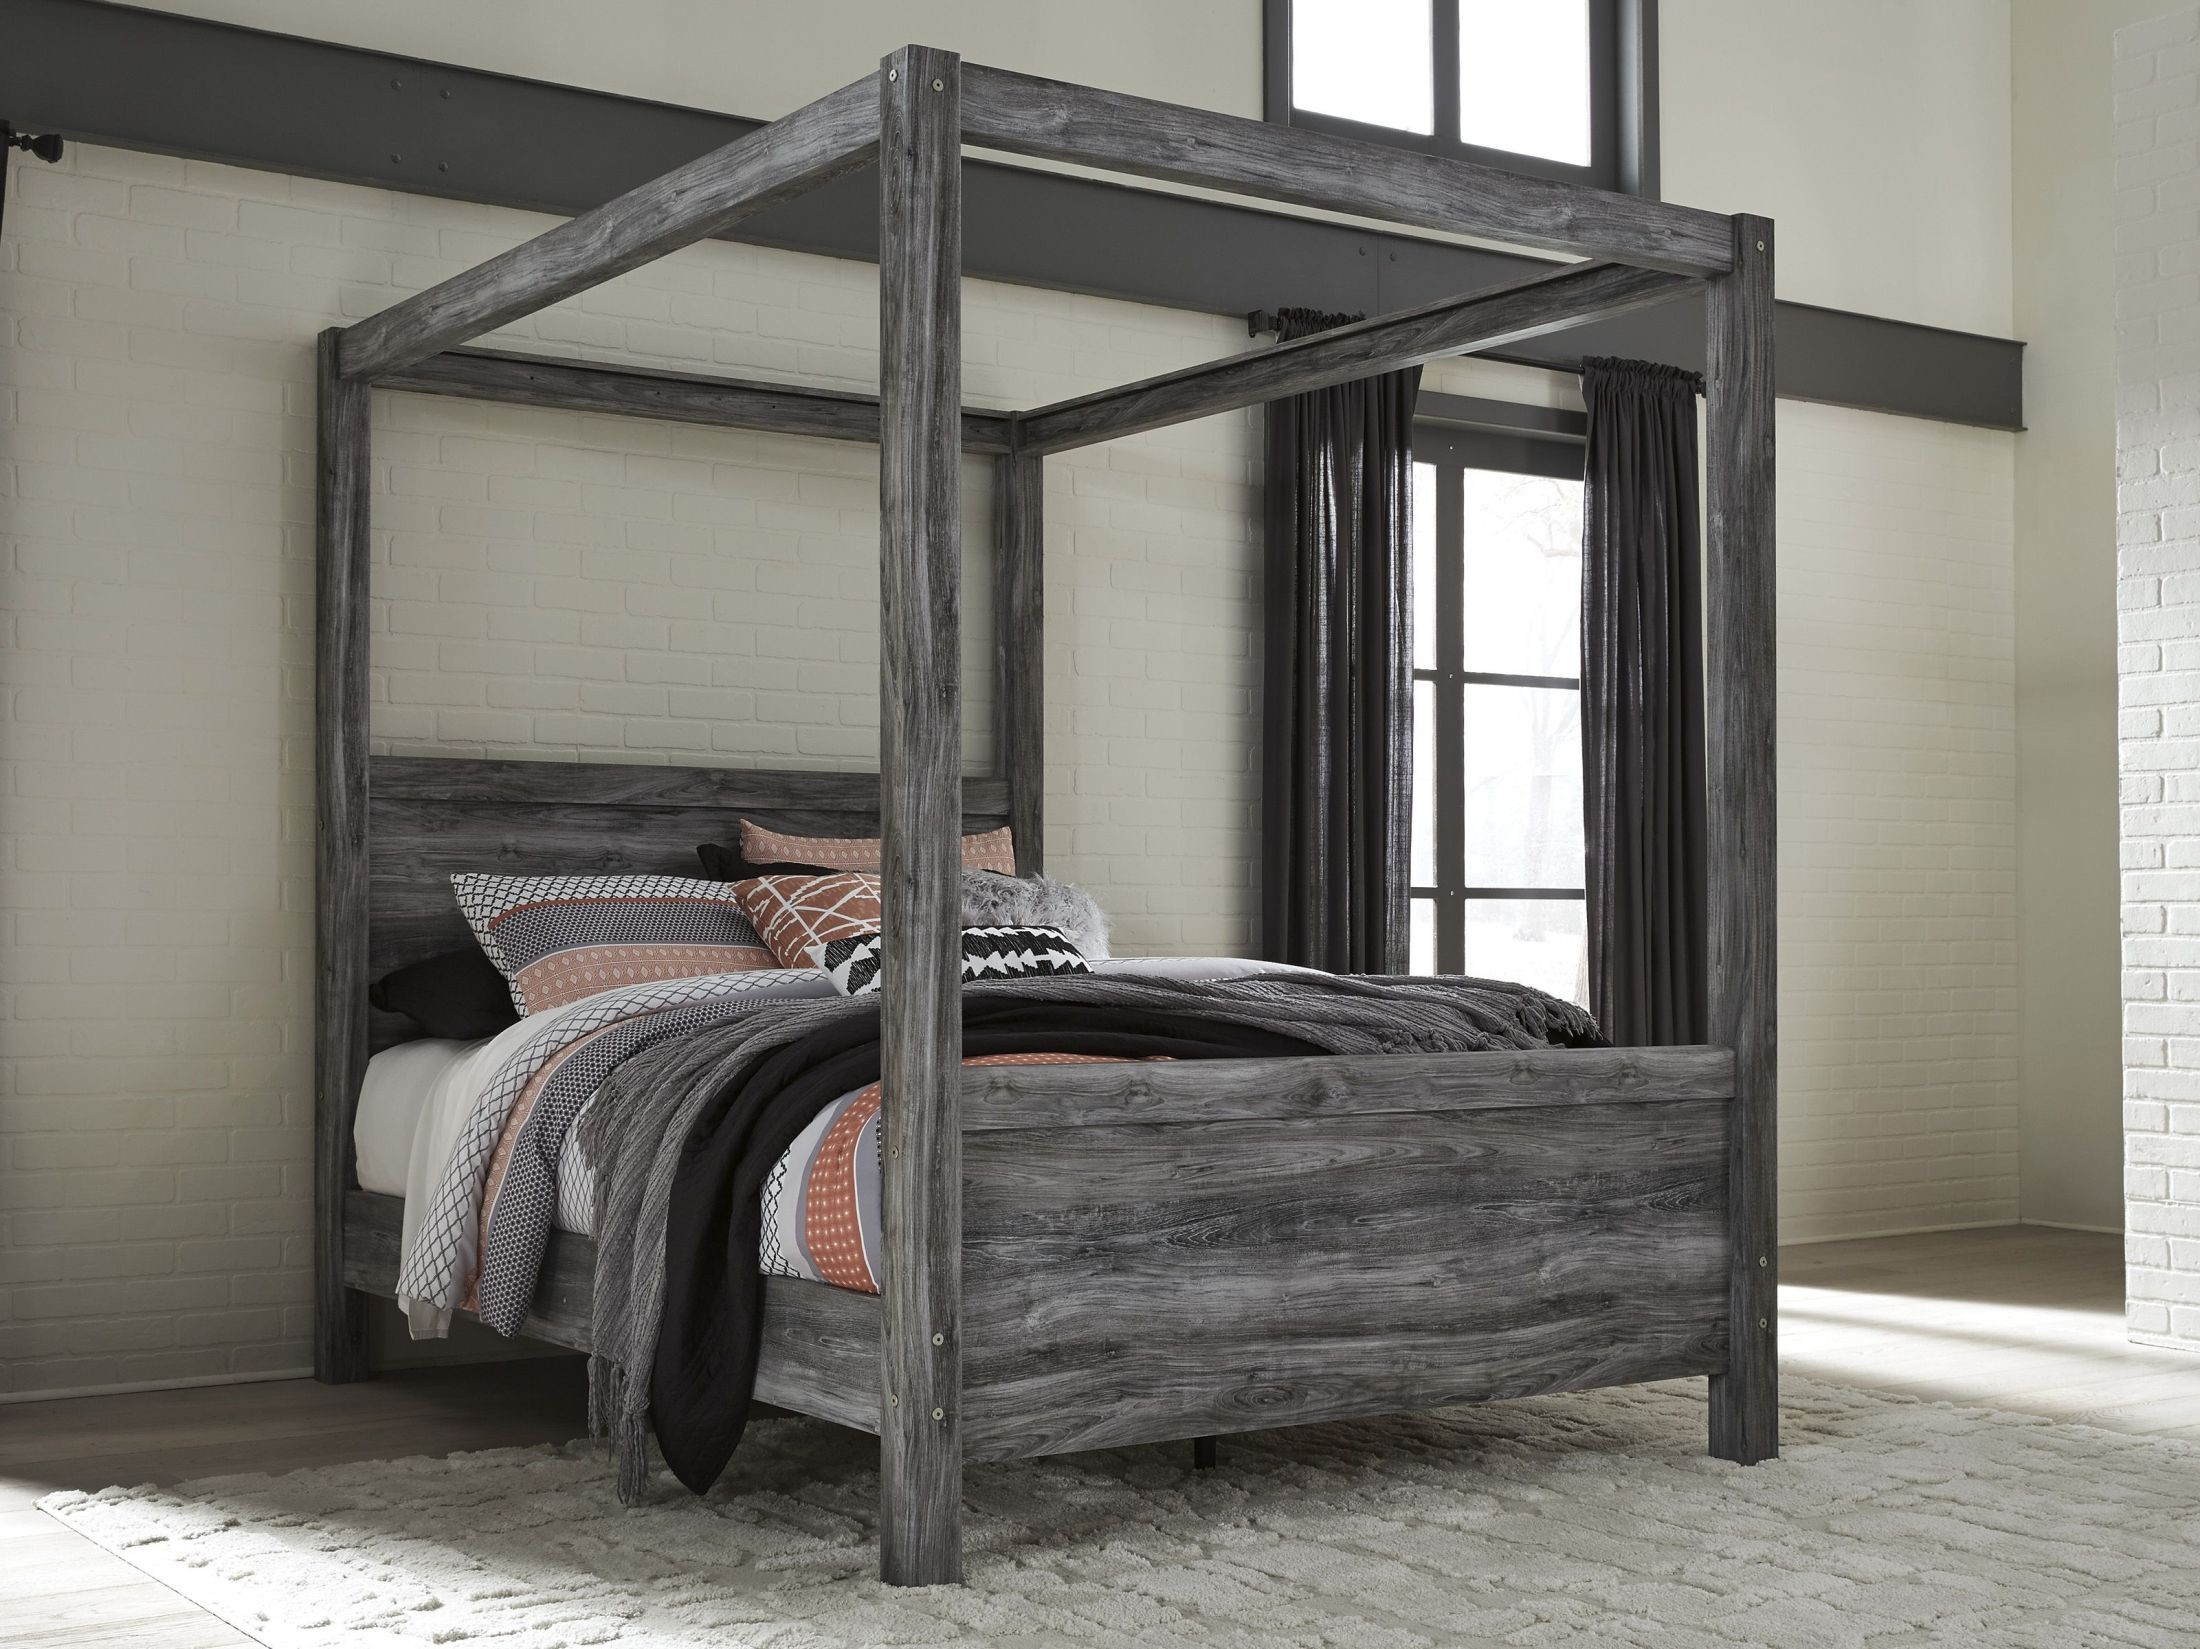 Baystorm Gray Queen Canopy Bed From Ashley Coleman Furniture